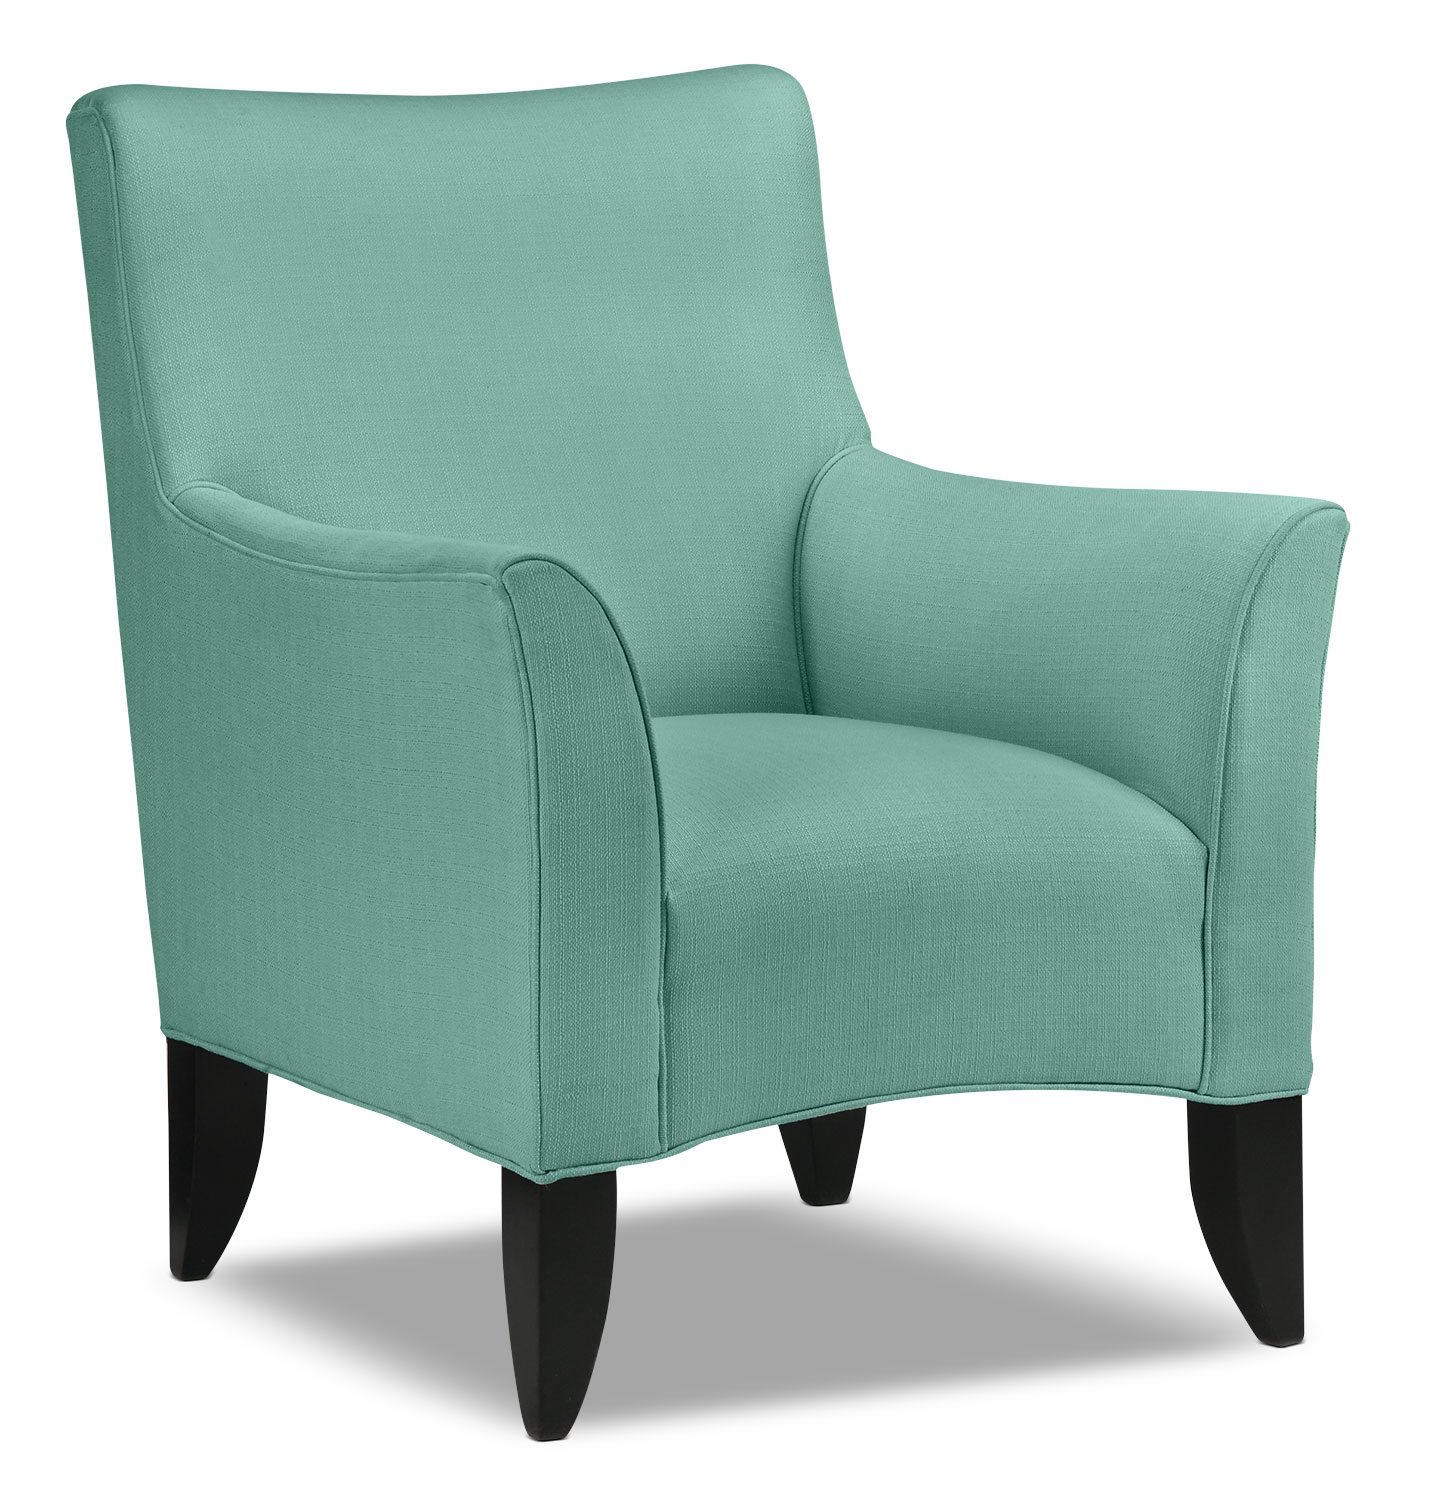 Klein Accent Chair - Laguna